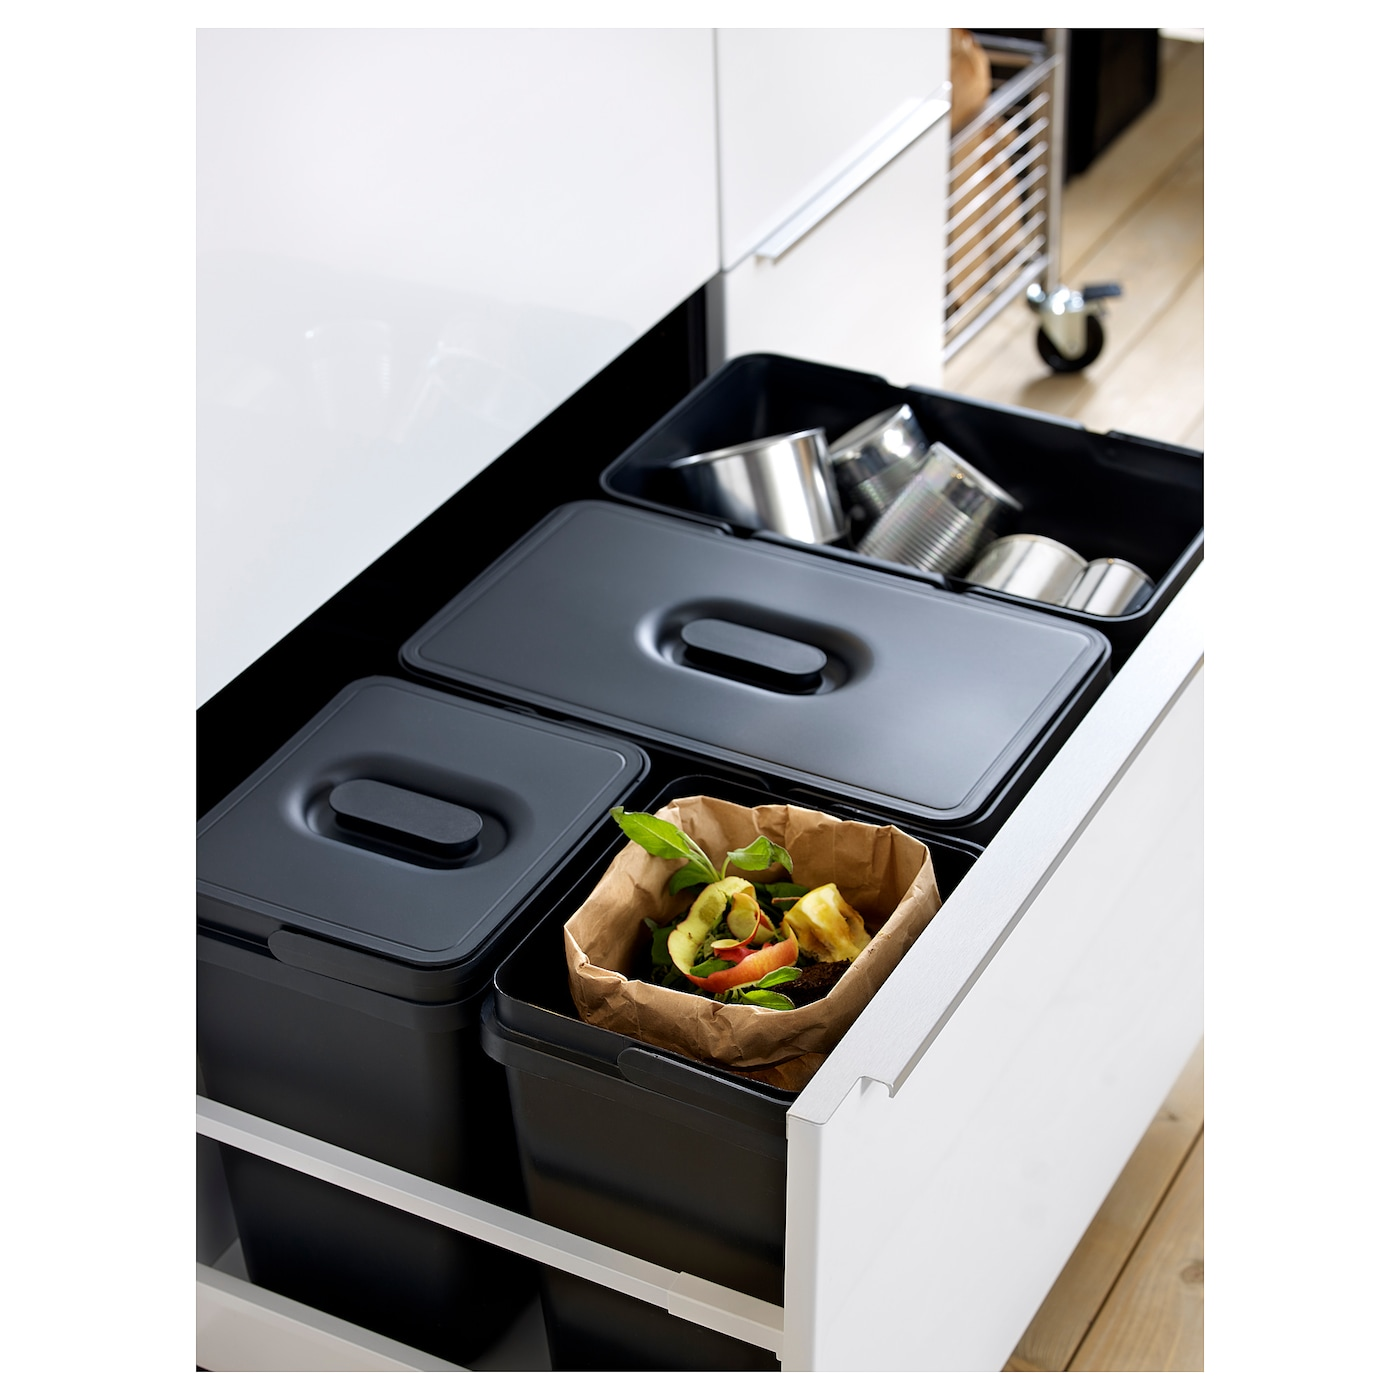 High Quality IKEA VARIERA Waste Sorting Bin Rounded Corners For Easy Cleaning.